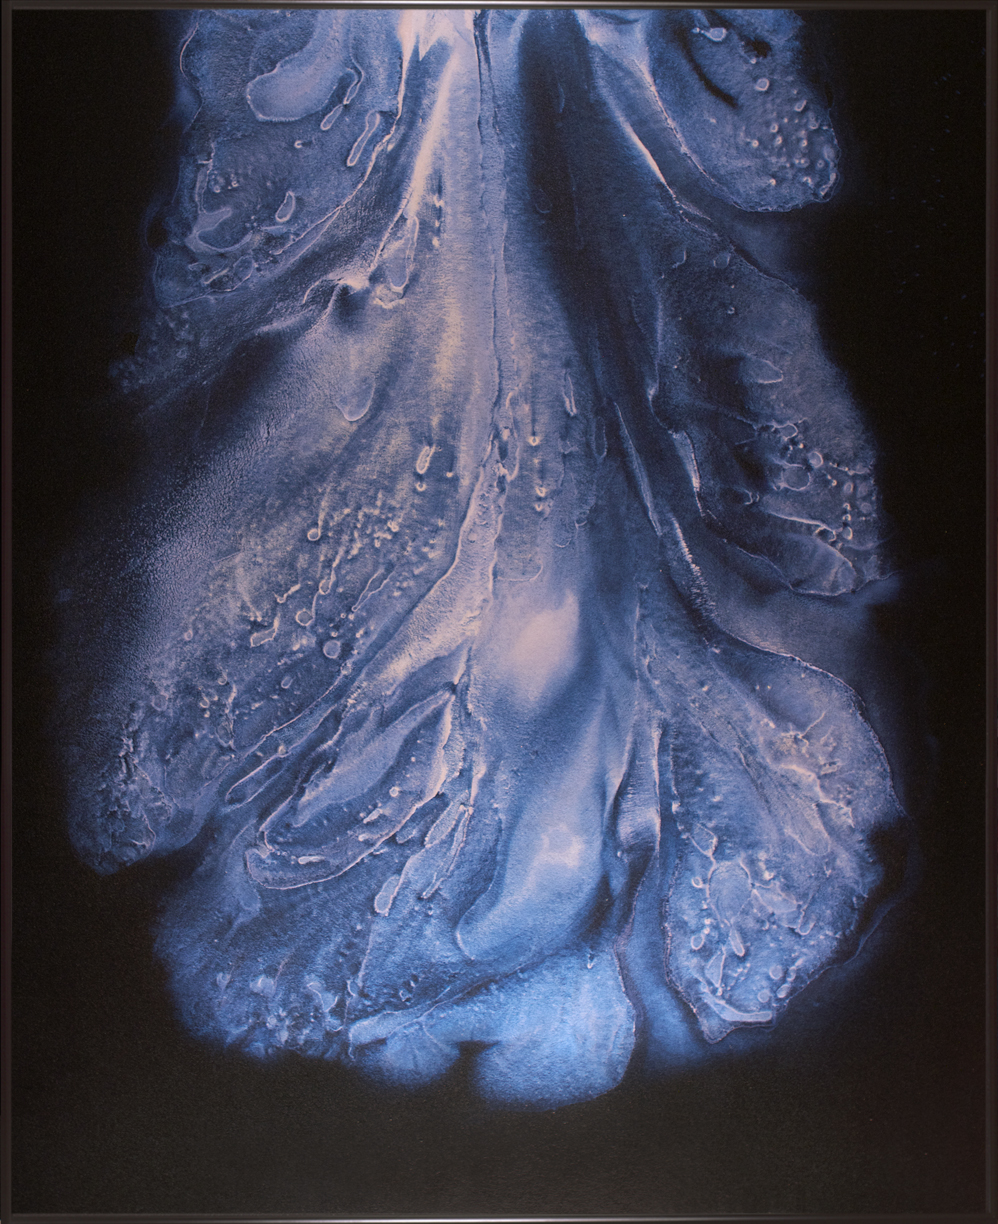 Flow of blue Iridescent paint on black canvas.